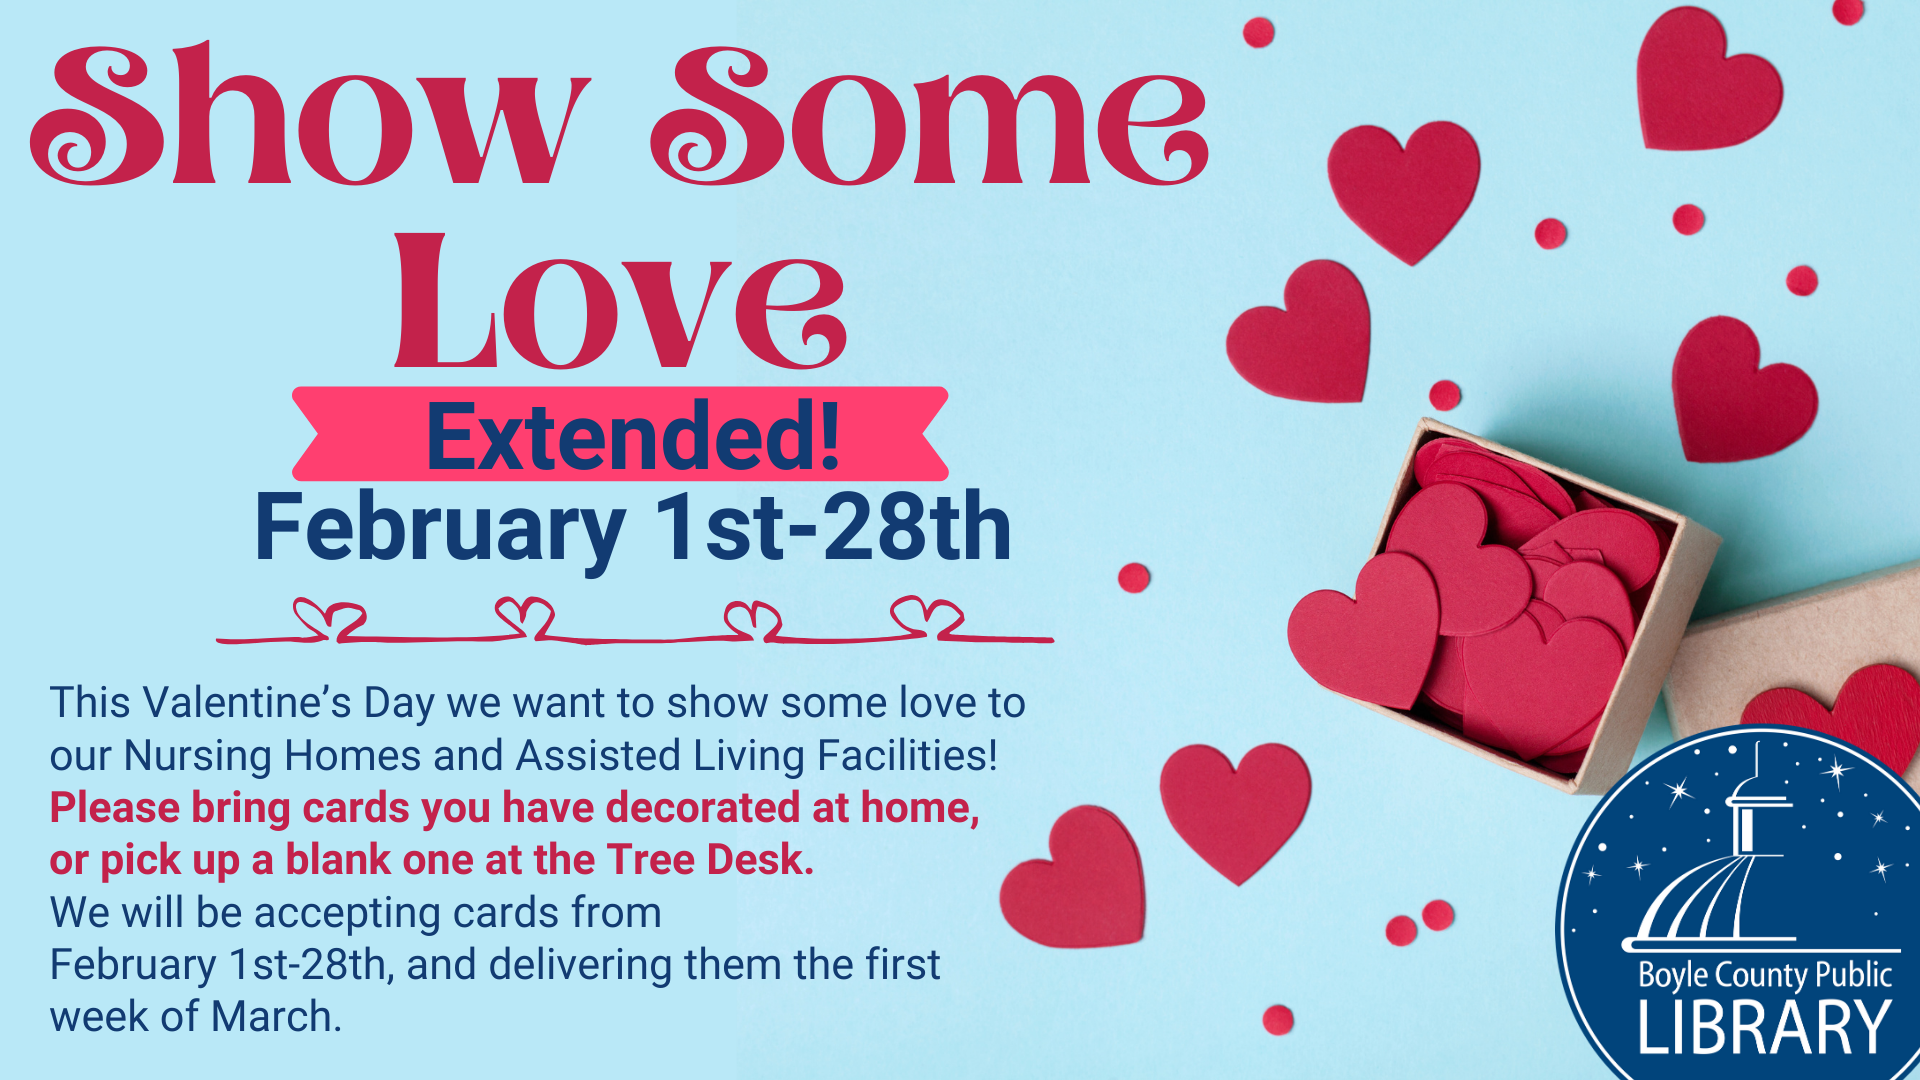 Show Some Love extended to February 28